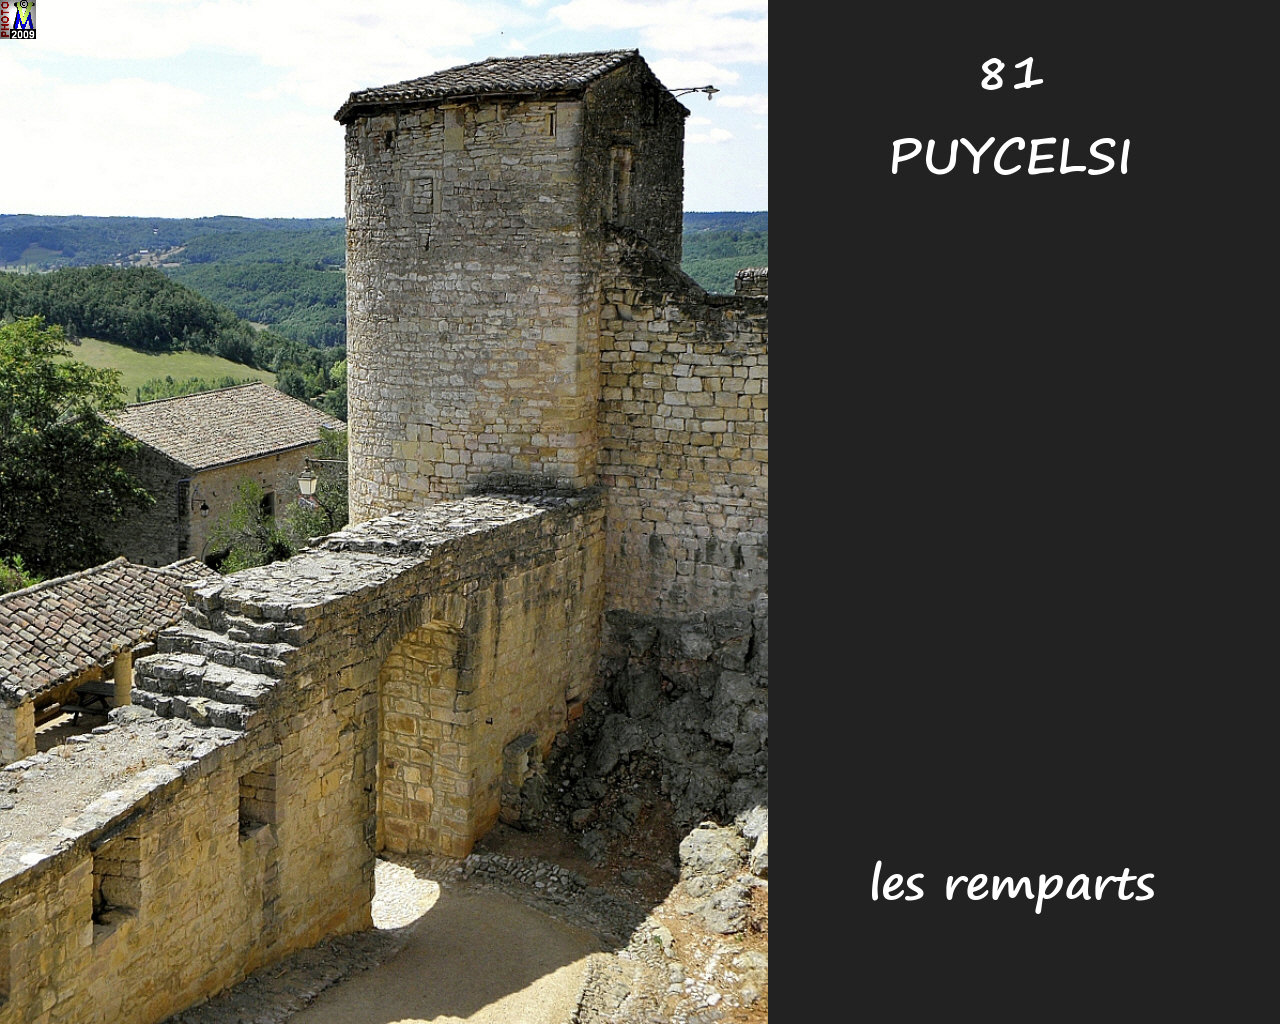 81PUYCELSI_remparts_114.jpg